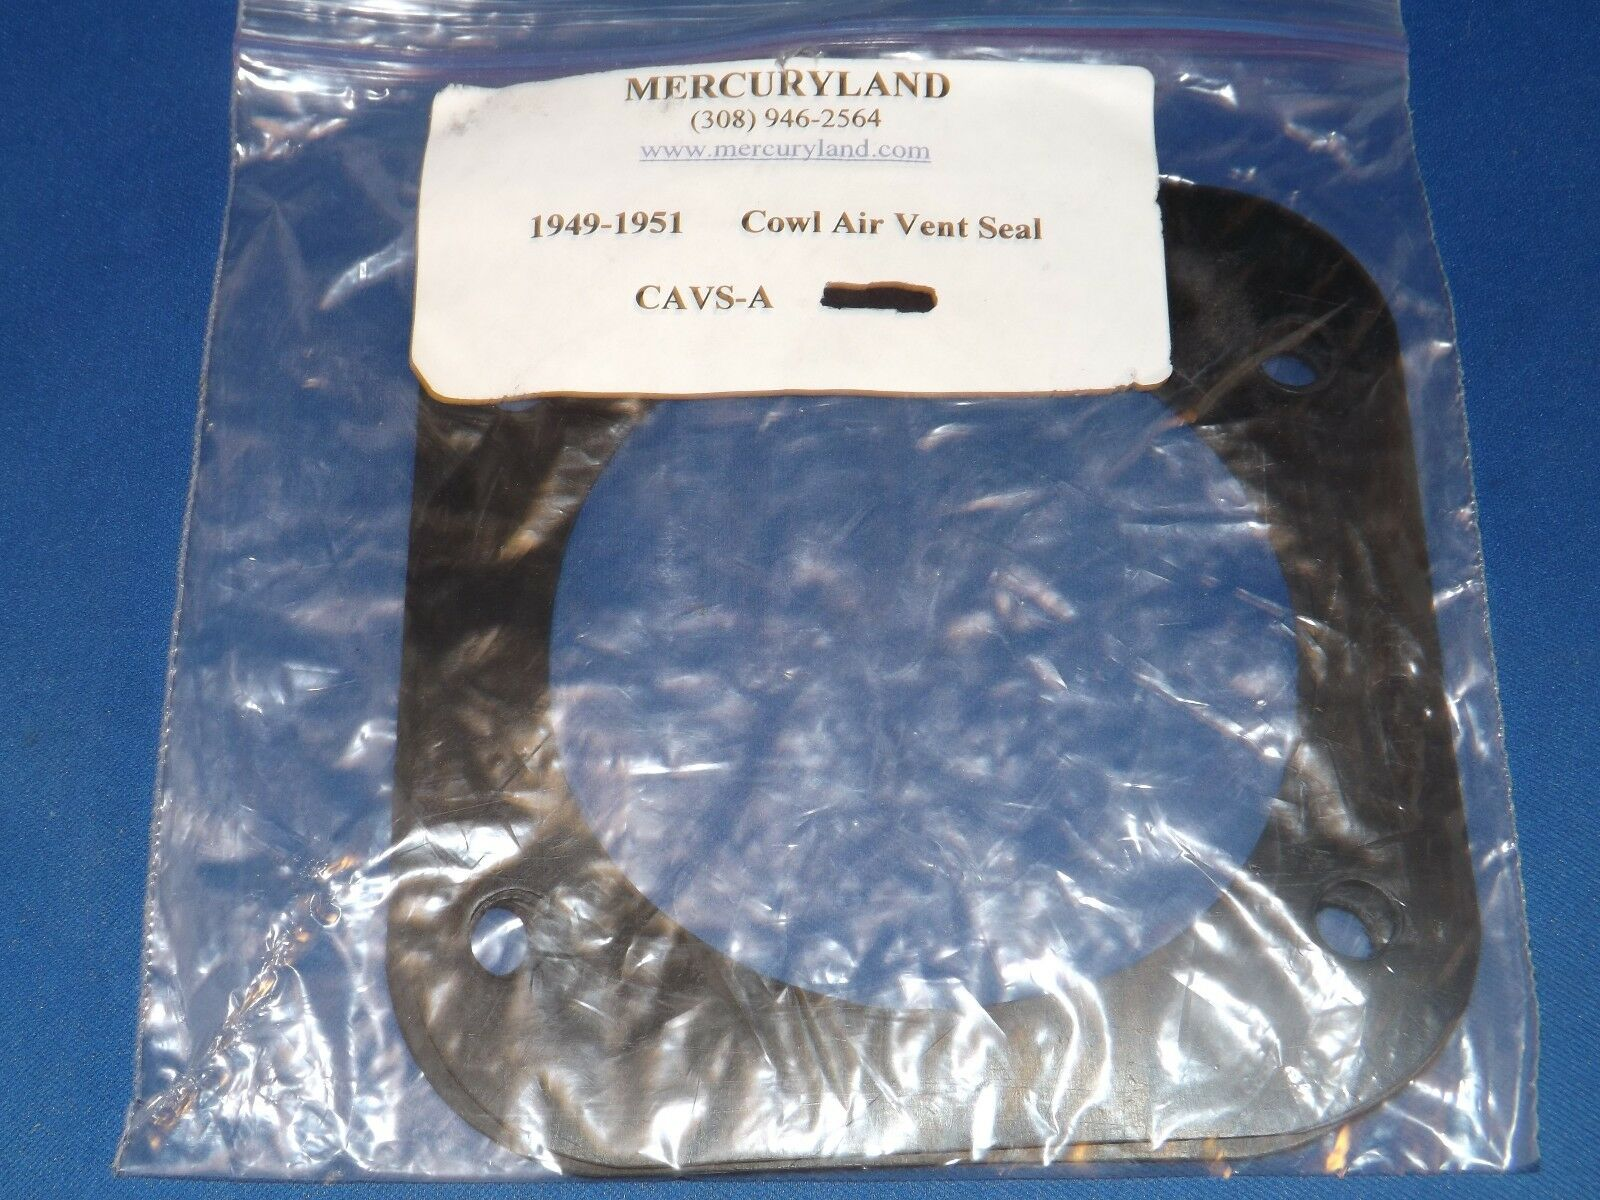 Mercuryland 1949-1951 Cowl Air Vent Seal CAVS-A